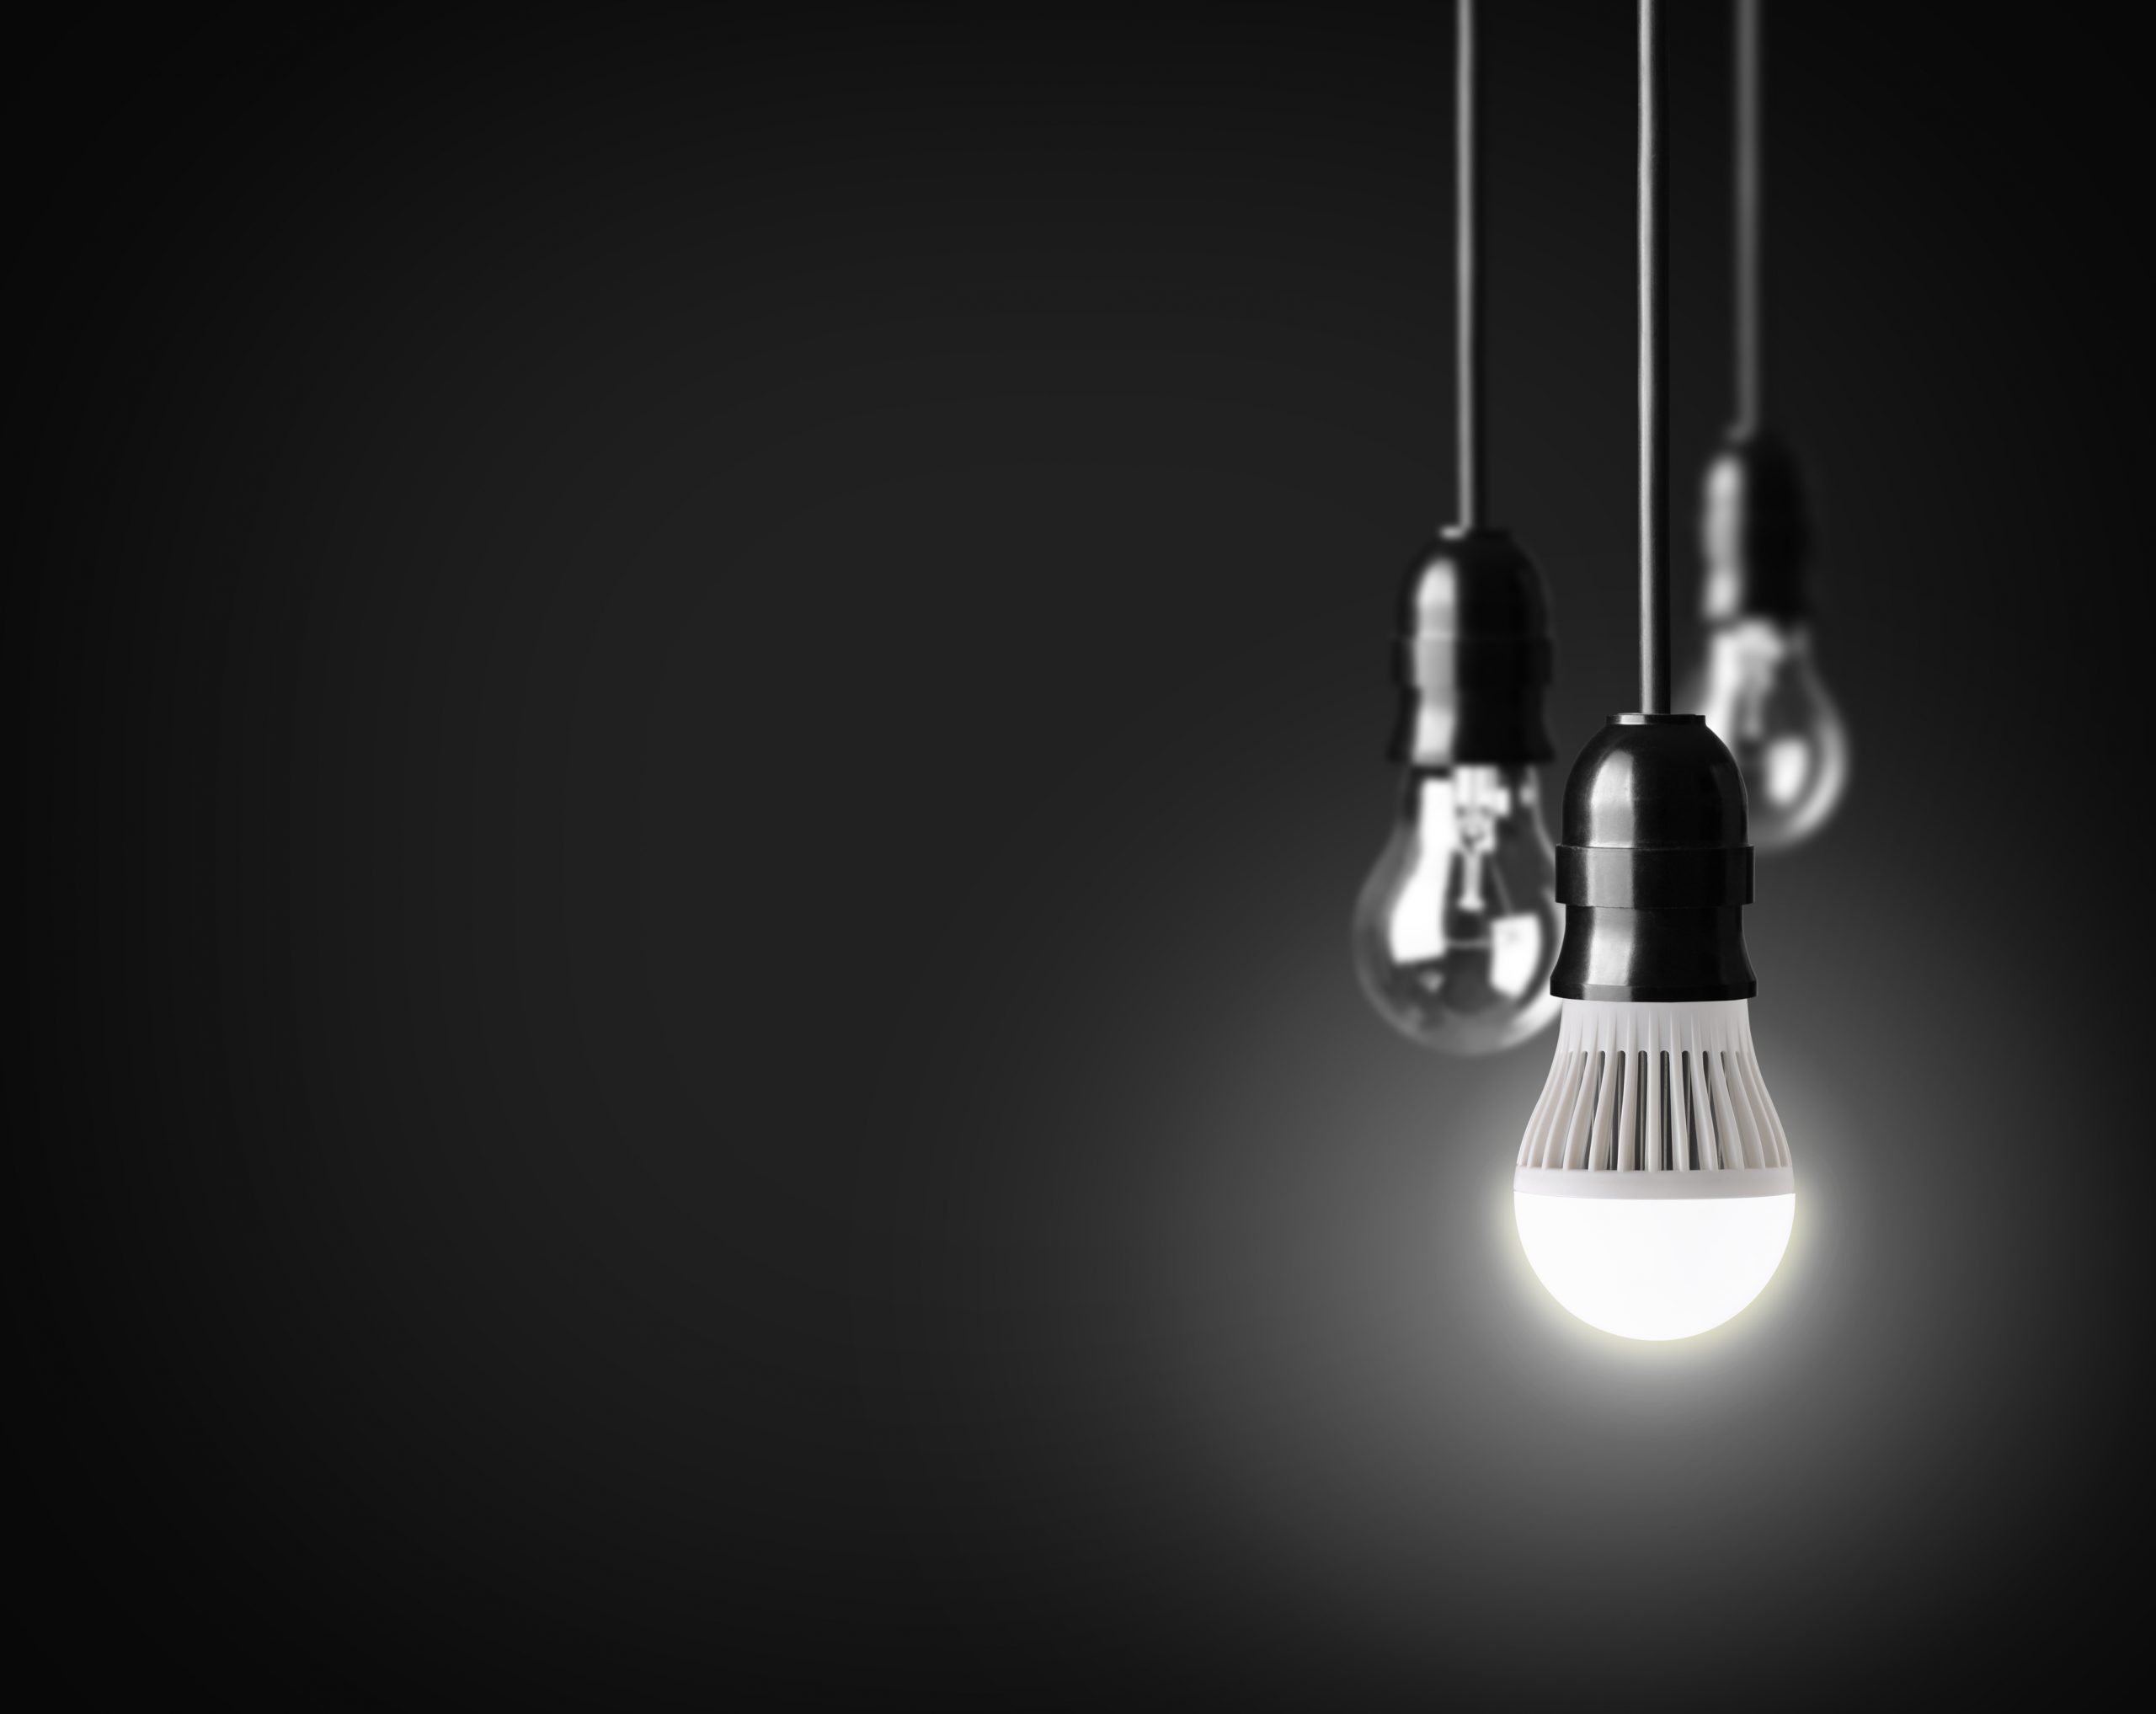 Things to know before buying lights online